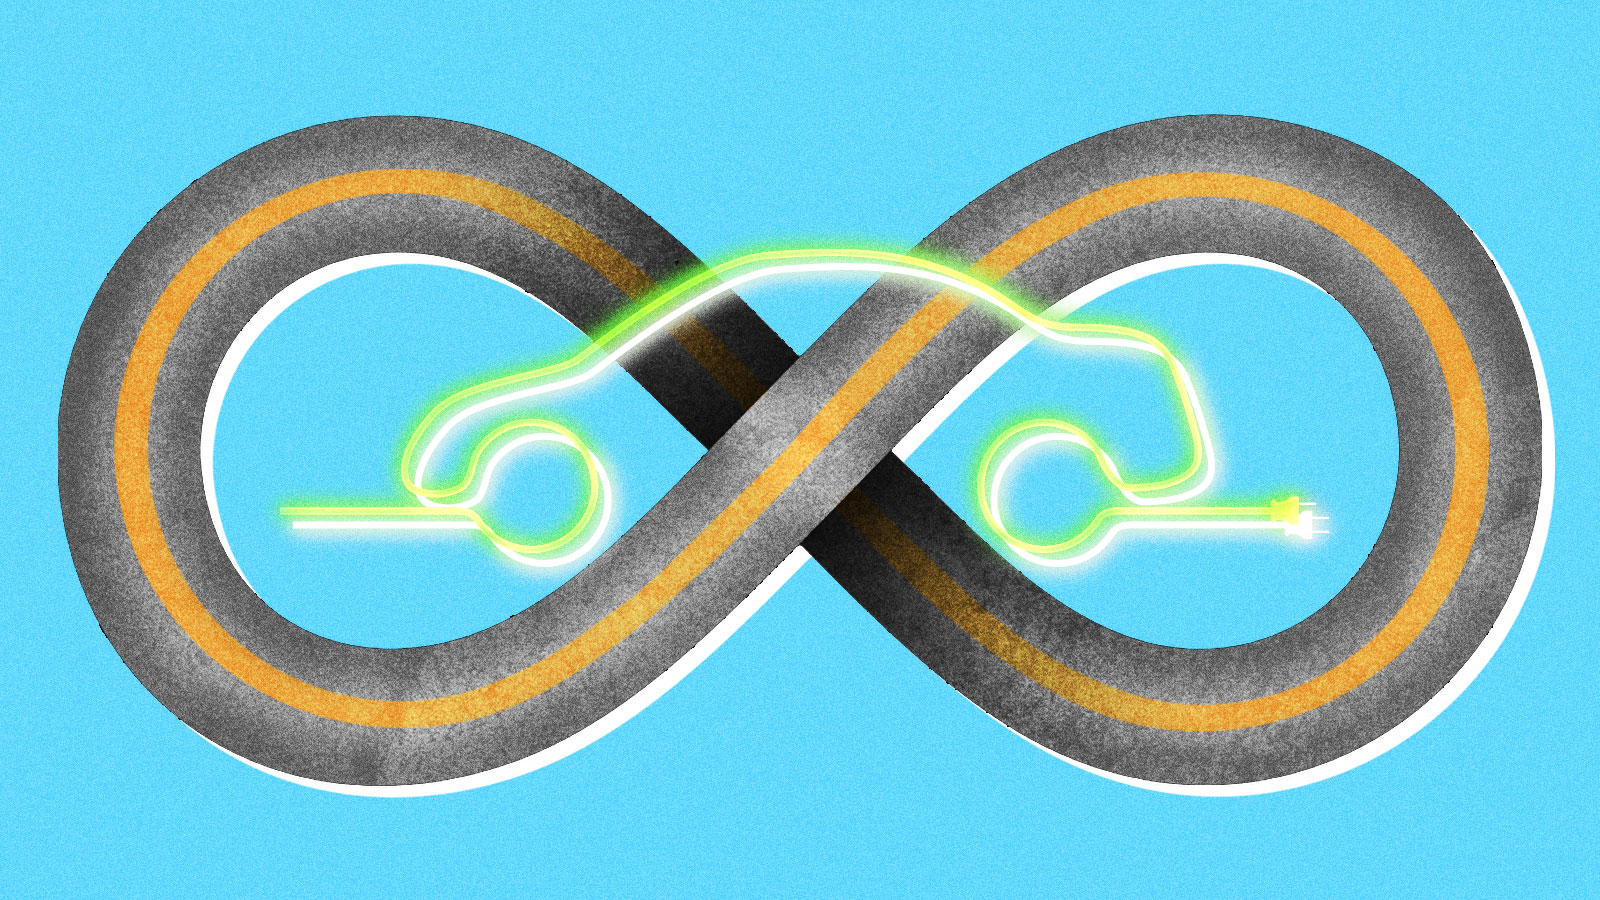 A road in the shape of an infinity symbol with a neon outline of a car with a power cable